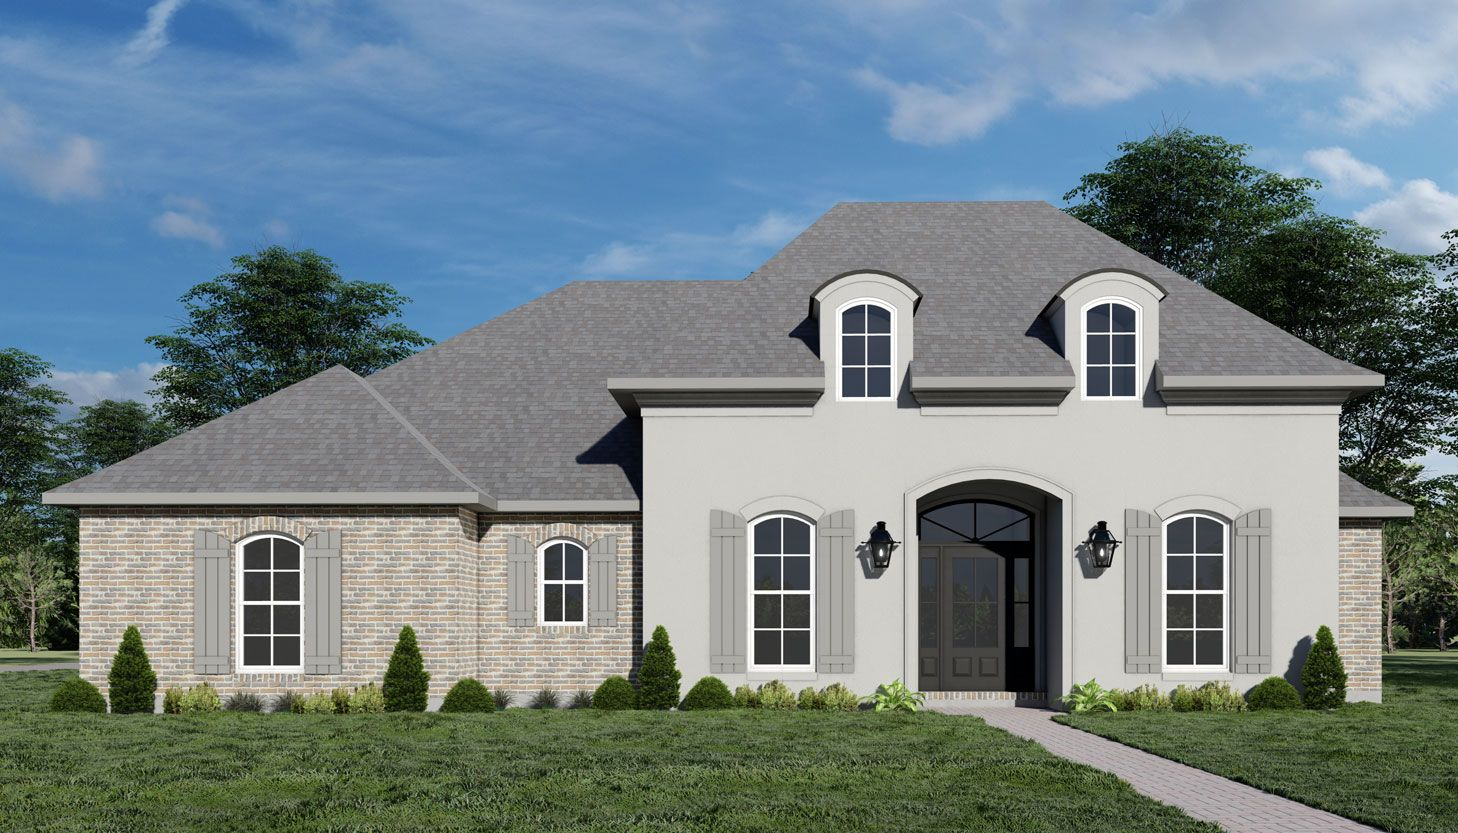 101-Cove-Glen-Lane-Luling-LA-Ashton-Plantation-Parade-of-Homes-2020-Reve-Inc.-Builders.jpeg